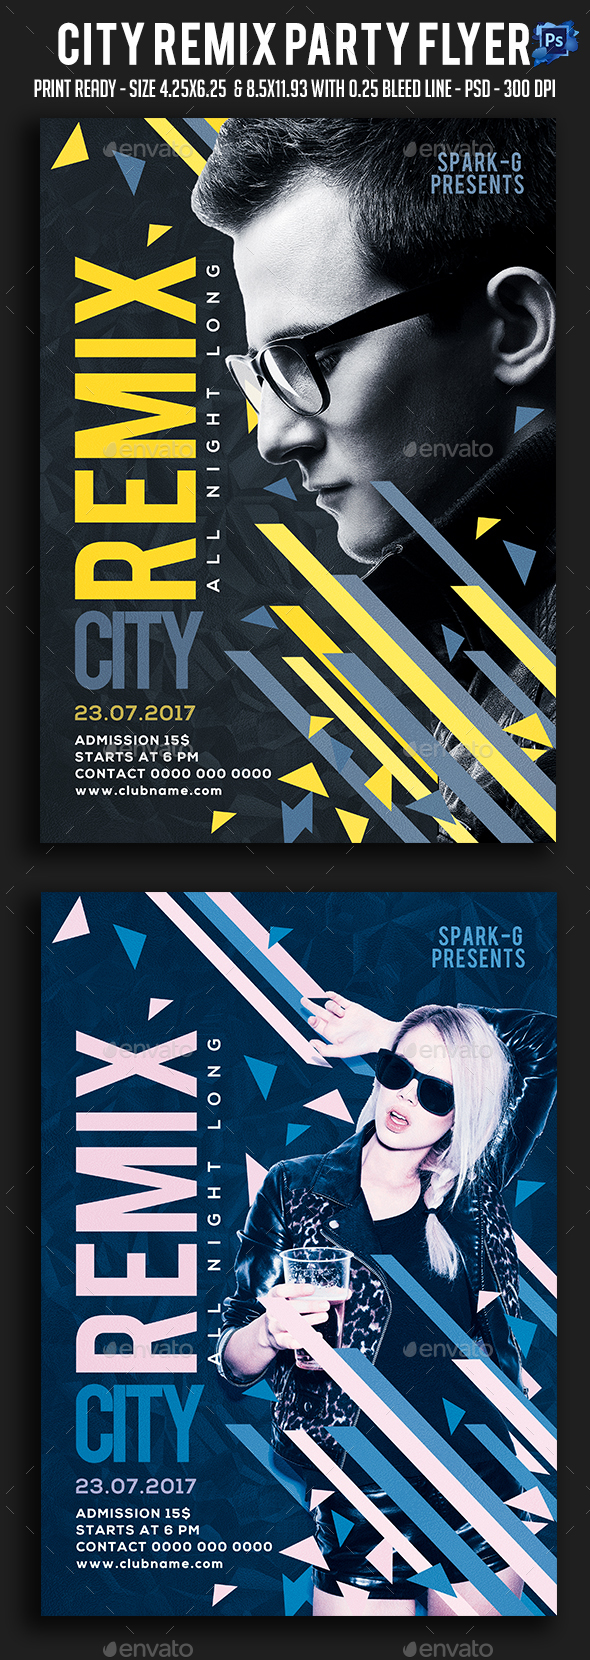 City Remix Party Flyer - Clubs & Parties Events